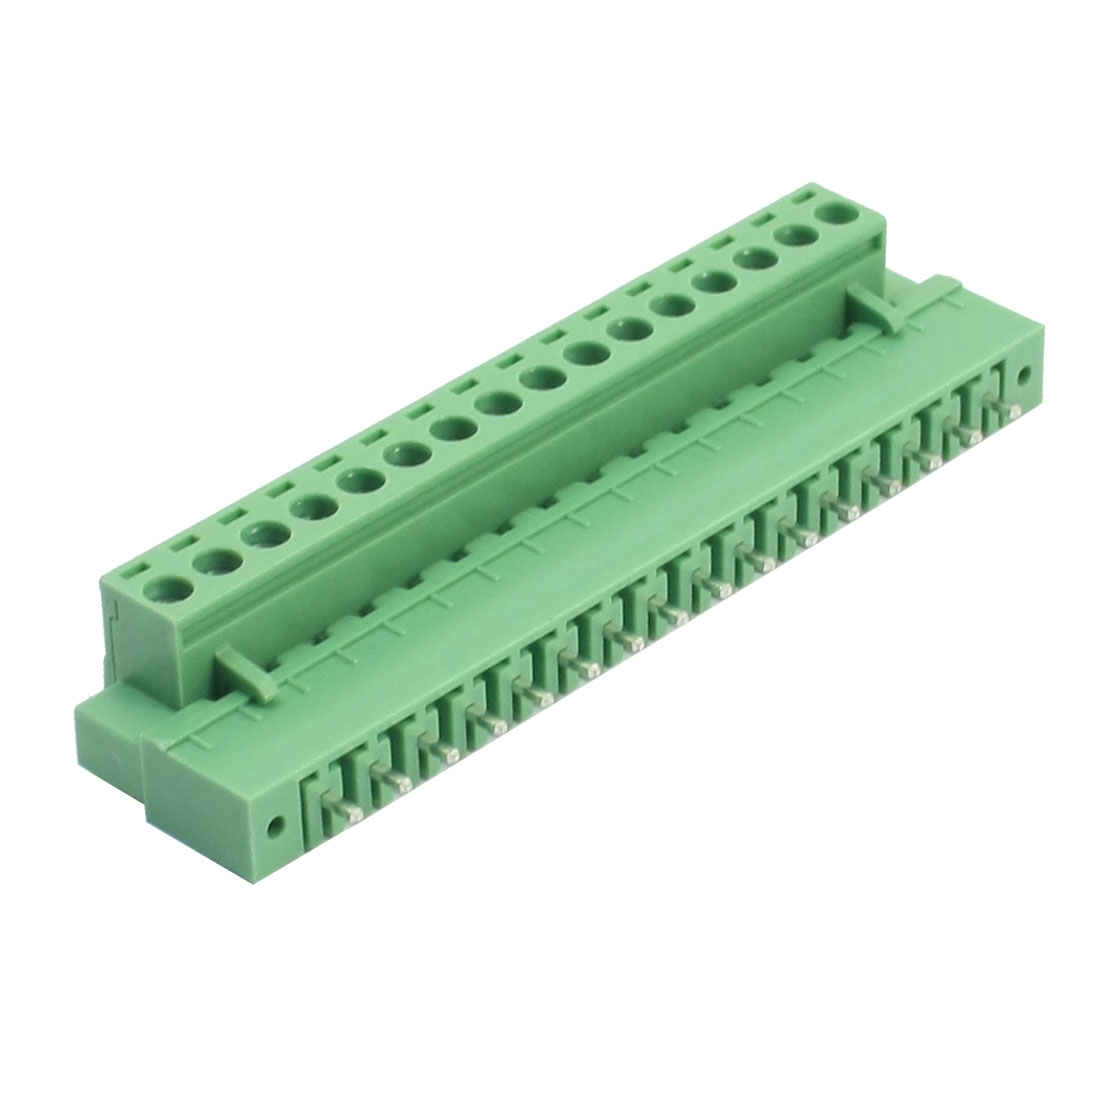 300V 10A 5.08mm Pitch 12-24AWG 16P Pluggable Type Right Angled PCB Surface Mounting Terminal Block Connector